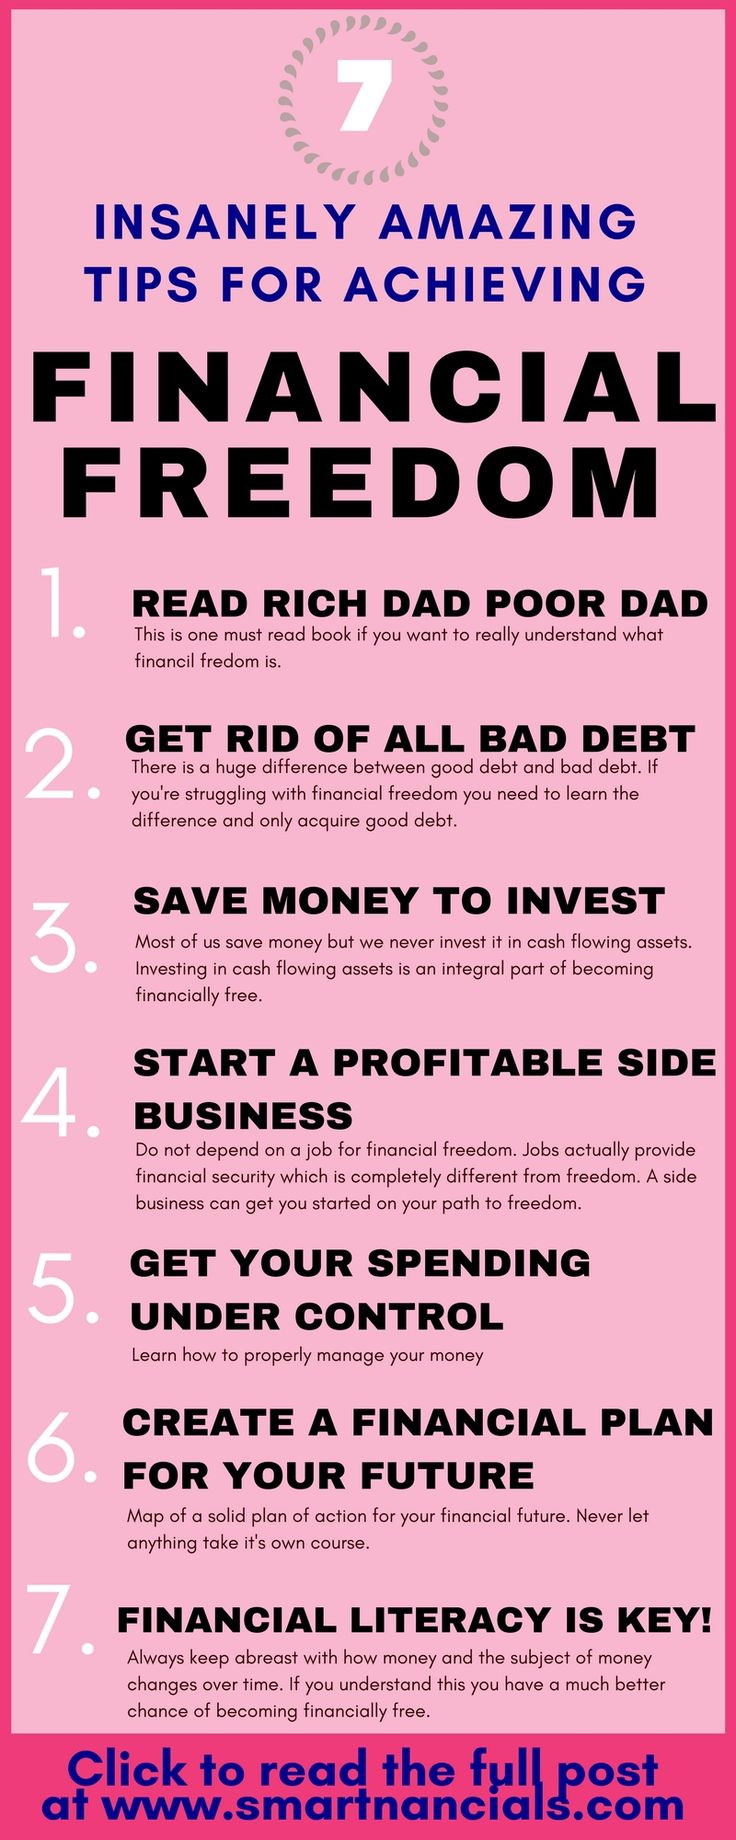 These insanely amazing tips to achieve financial freedom are seriously the best! I'm so happyI found these great tips and tricks! Now I know some awesome steps to take to become financially free! Definitely pinning!